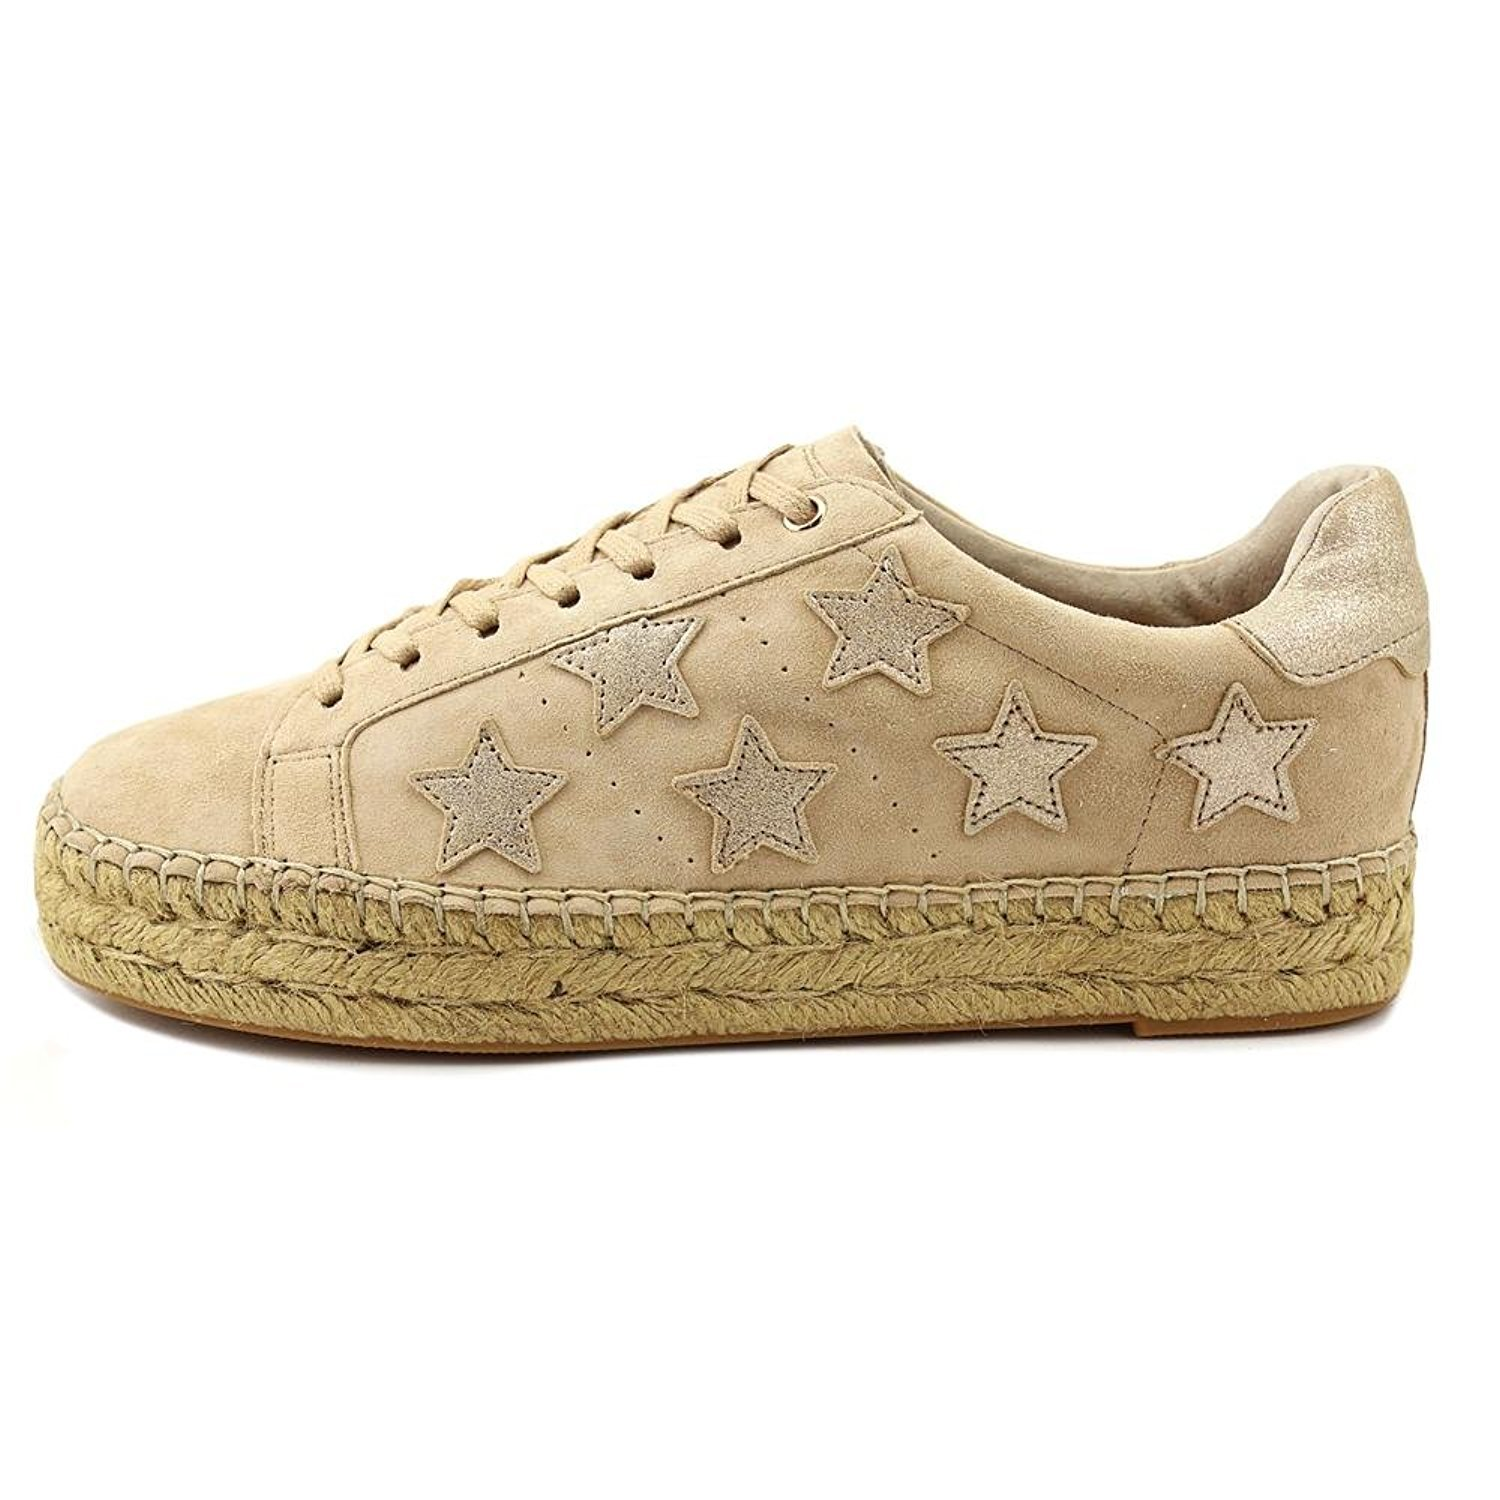 Marc Fisher Womens Marcia Leather Low Top Lace Up, Light Natural, Size 6.0 by Marc Fisher (Image #4)